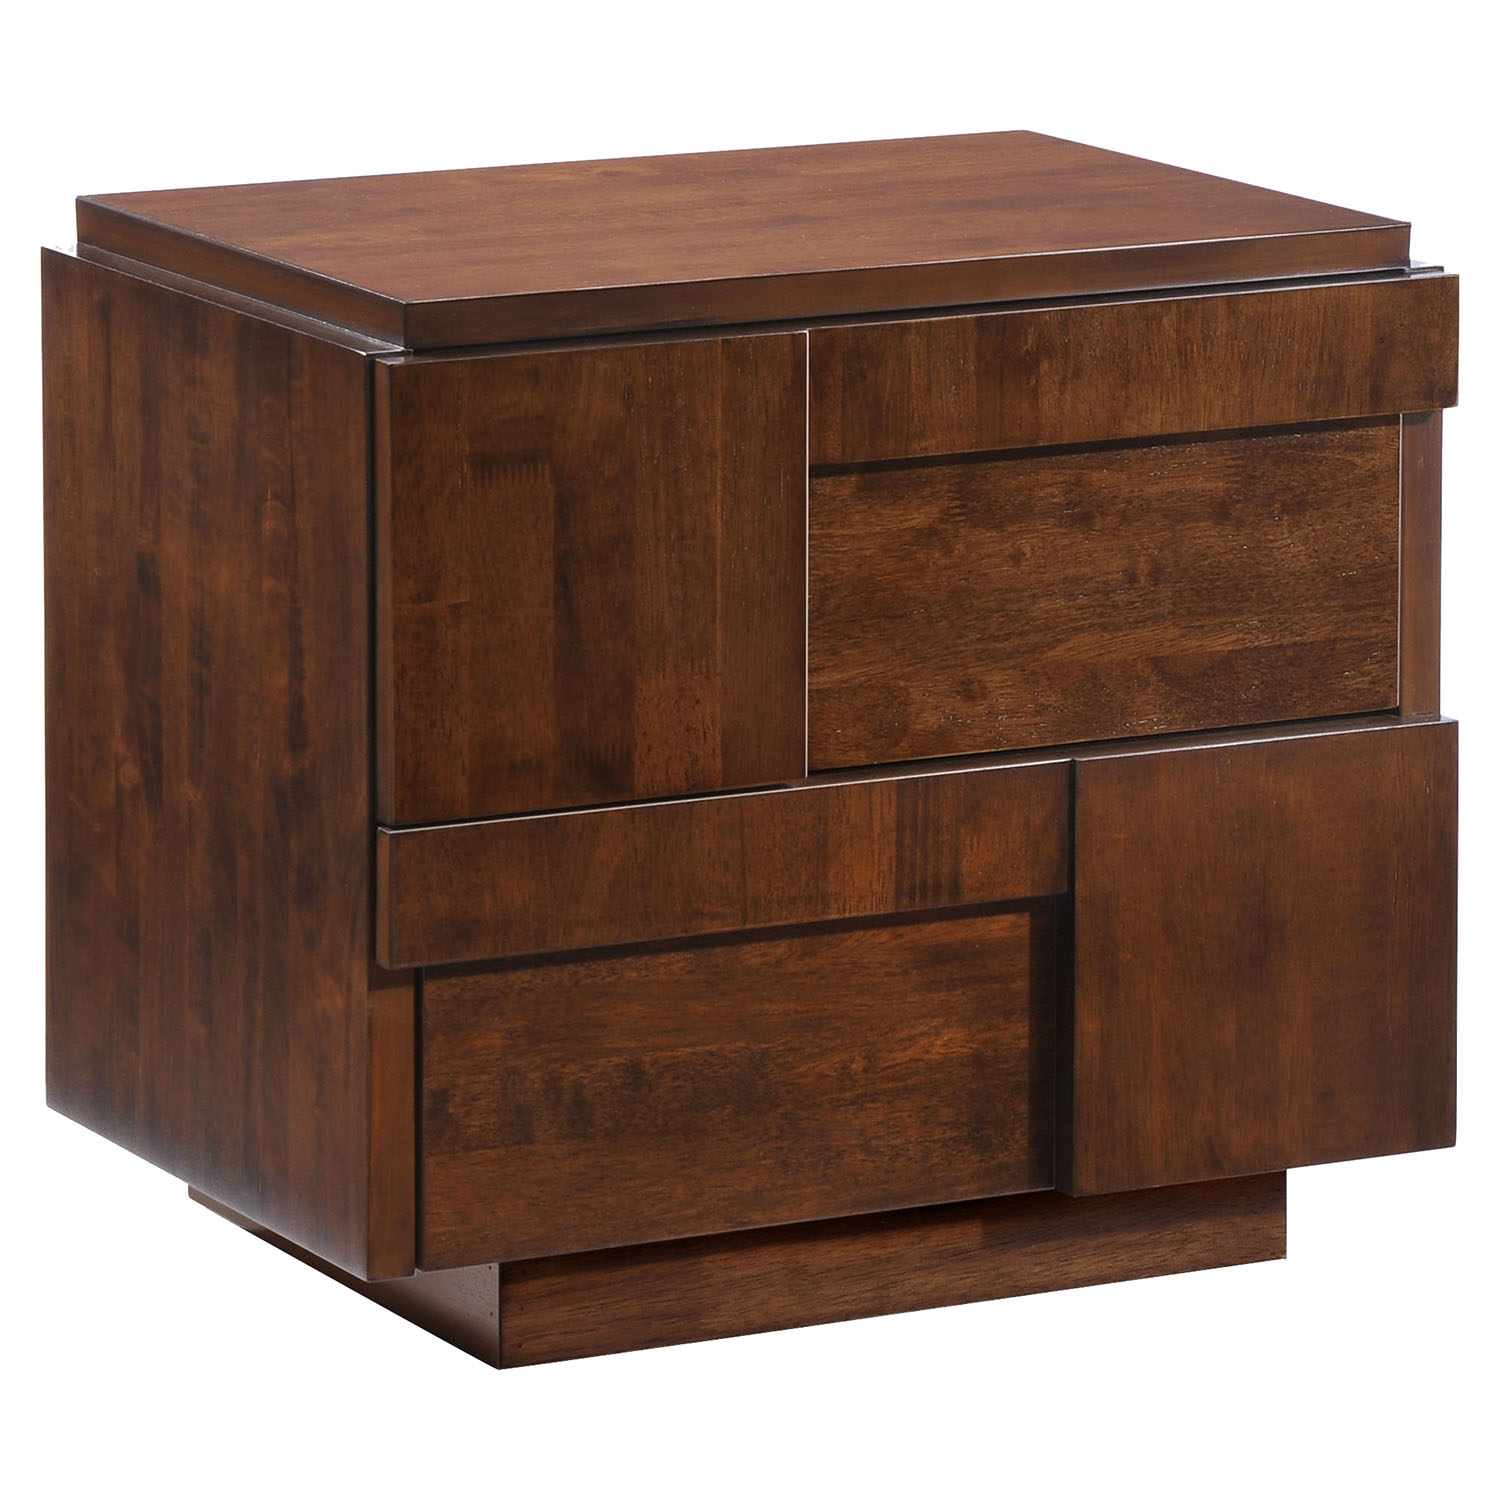 San Diego Nightstand - Walnut - ZM-800330